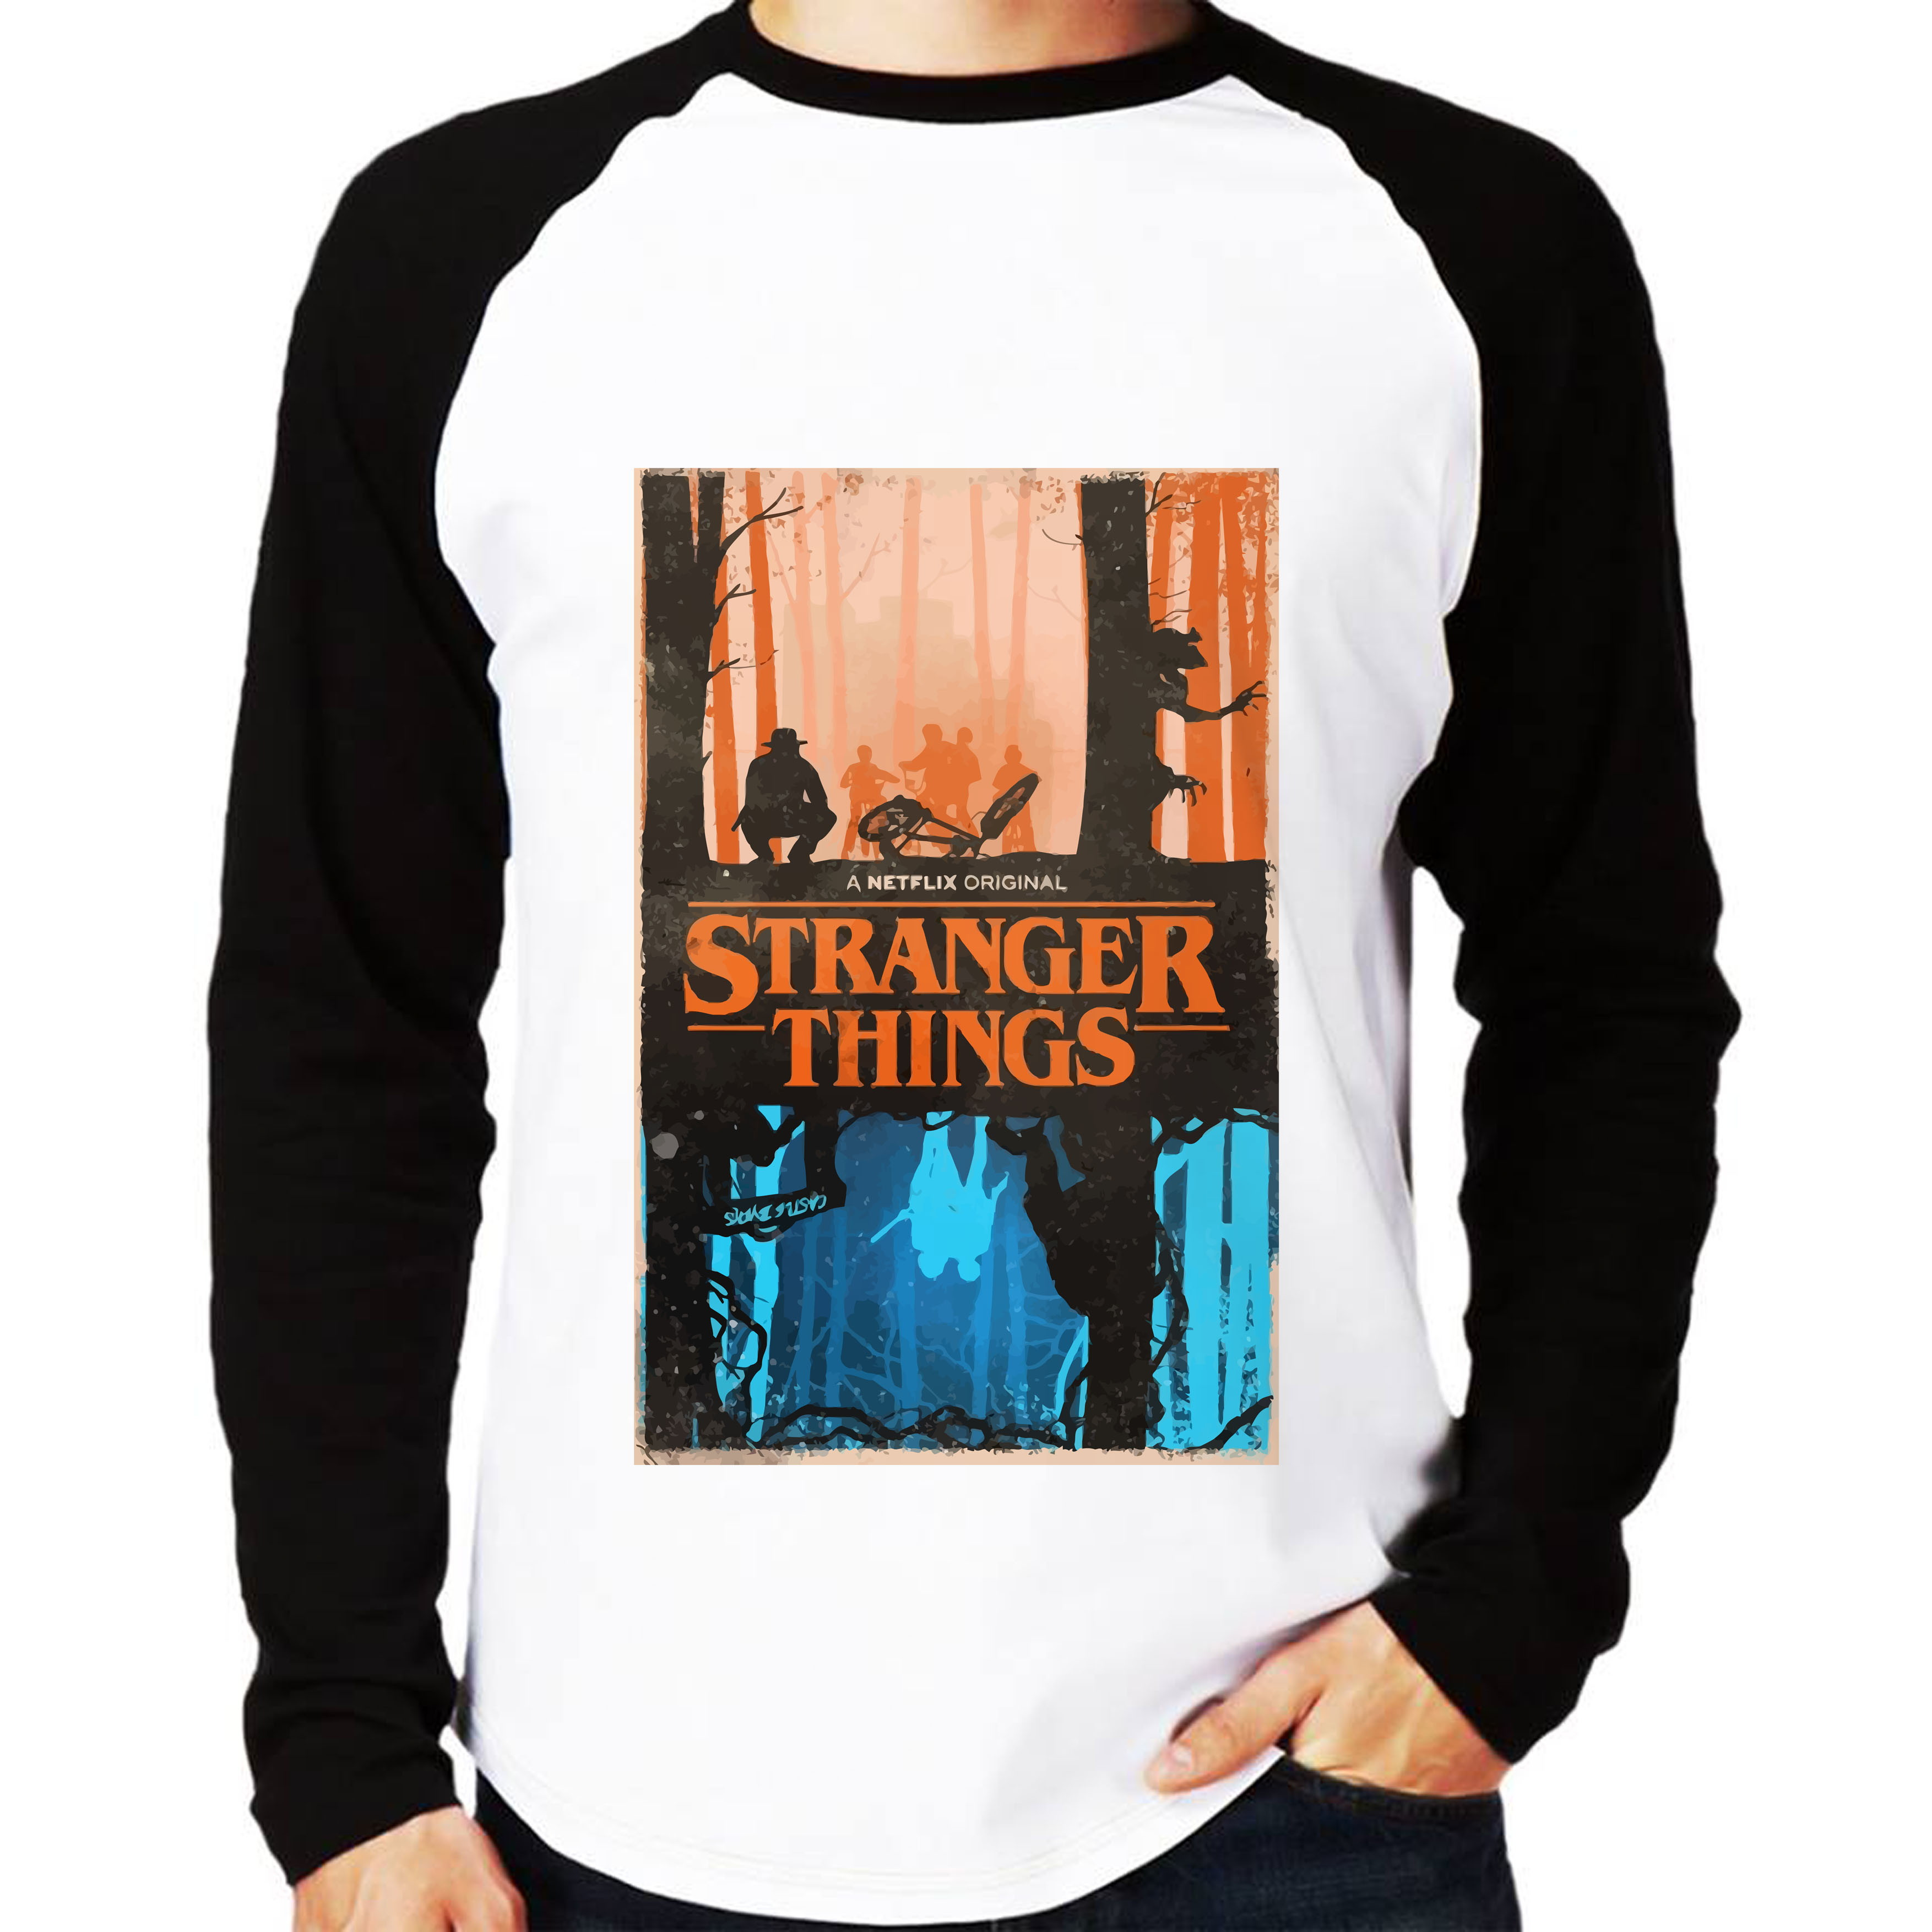 5a492a0c3 Camisa Stranger Things Alfabeto